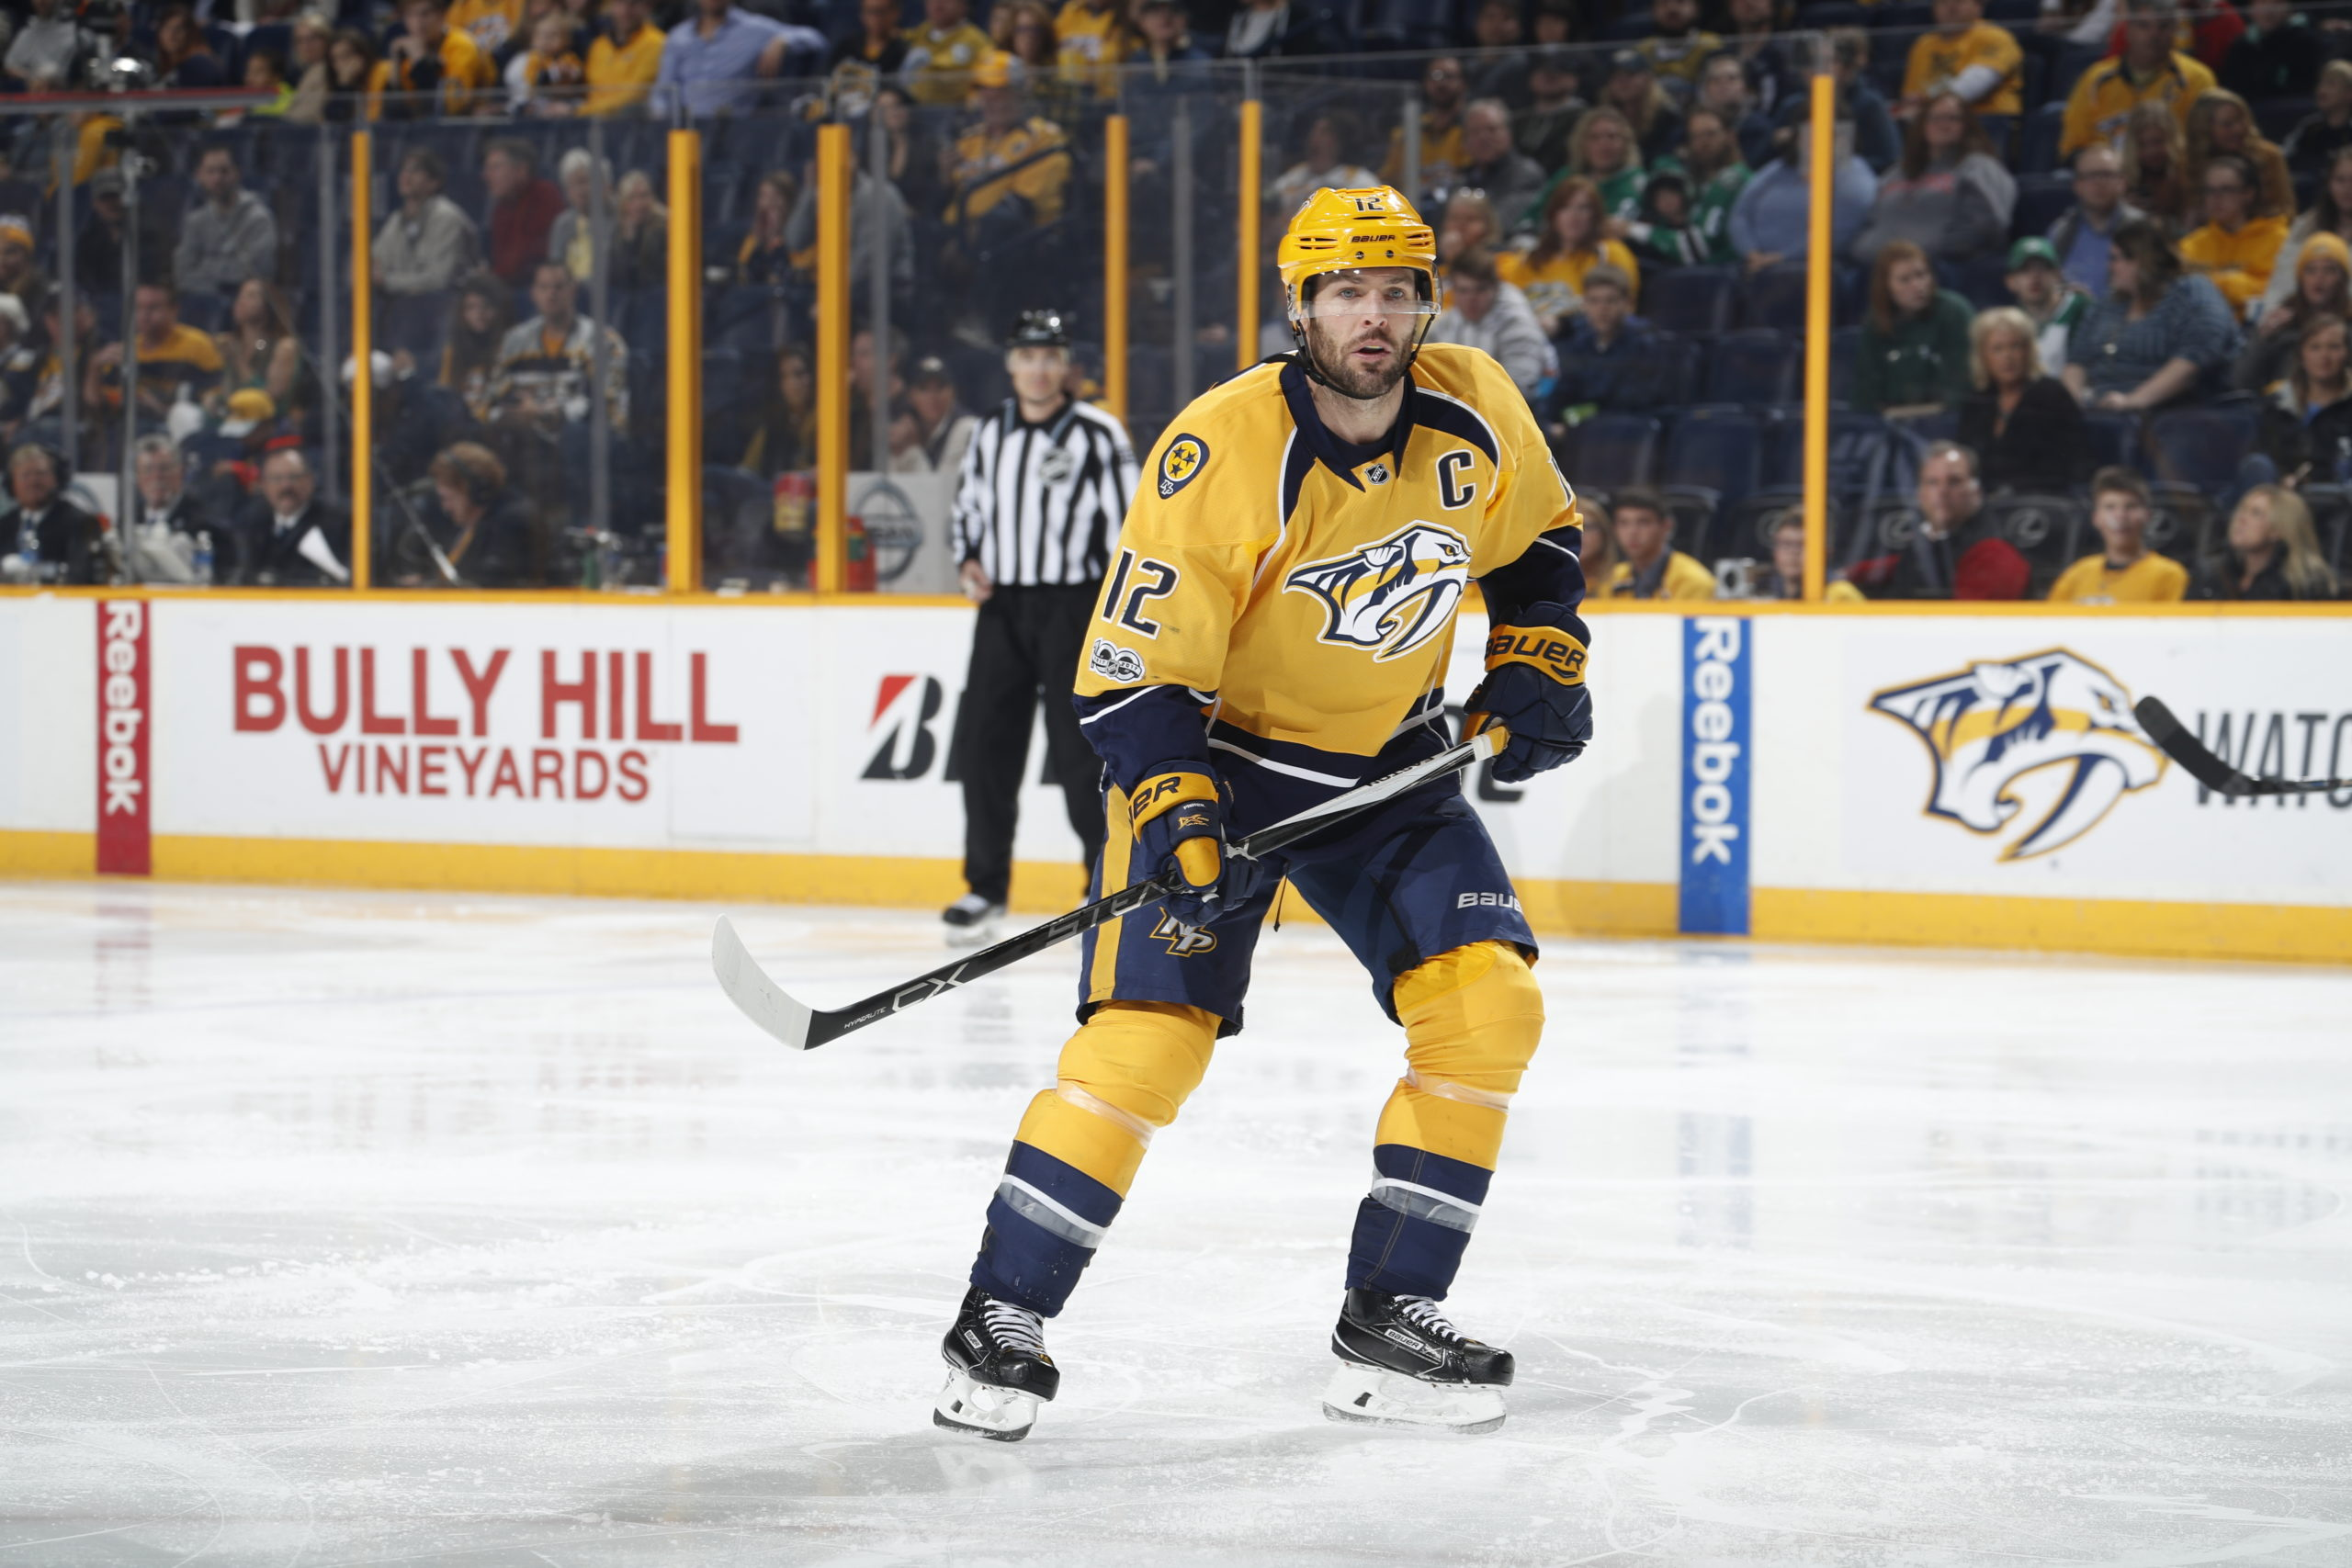 Nashville Predators Introduce Jr. Preds Hockey Team | NHL.com